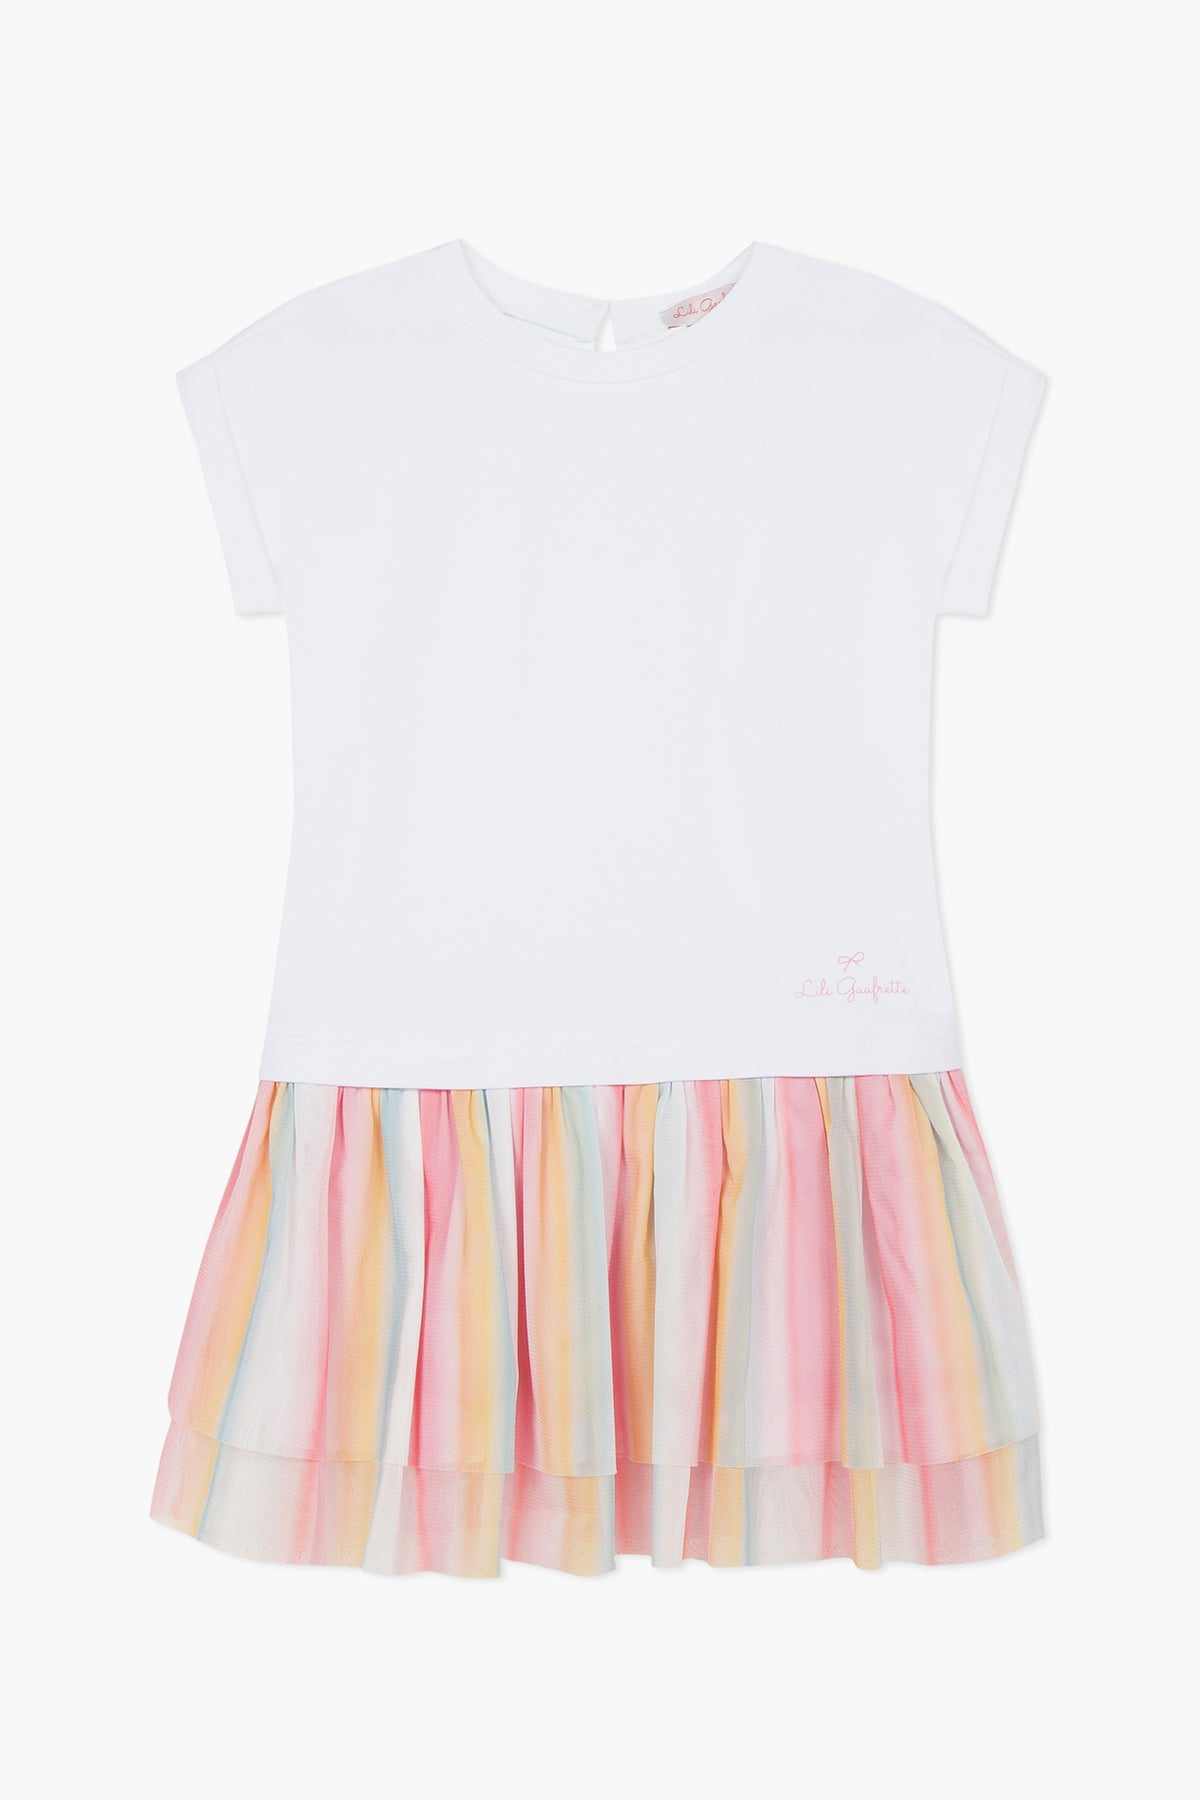 Lili Gaufrette Sherbet Duo Girls Dress